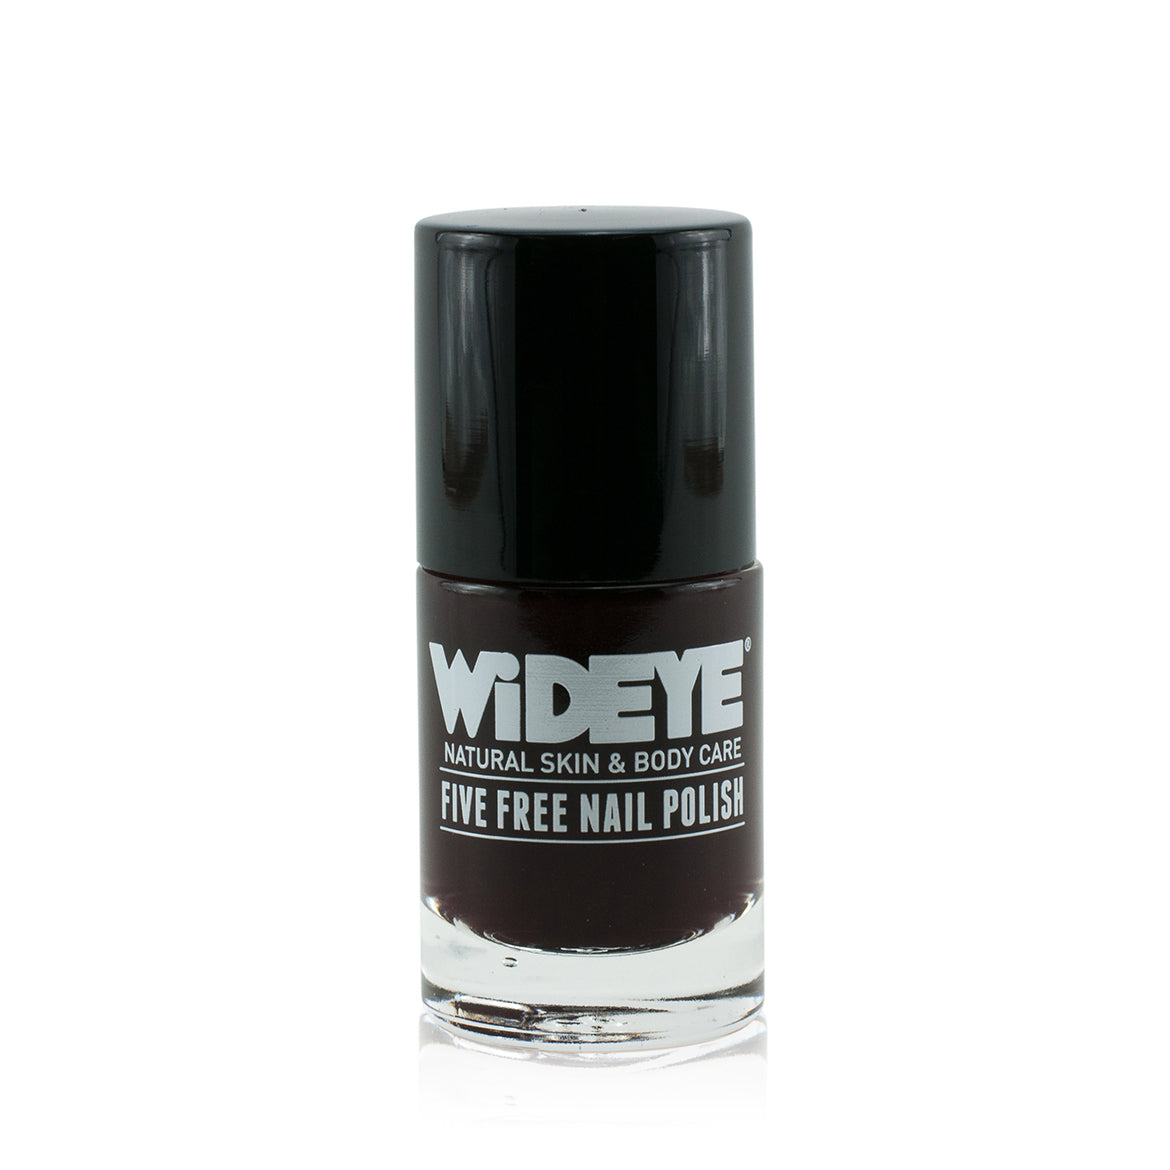 Chocolate brown nail varnish in glass bottle by WiDEYE